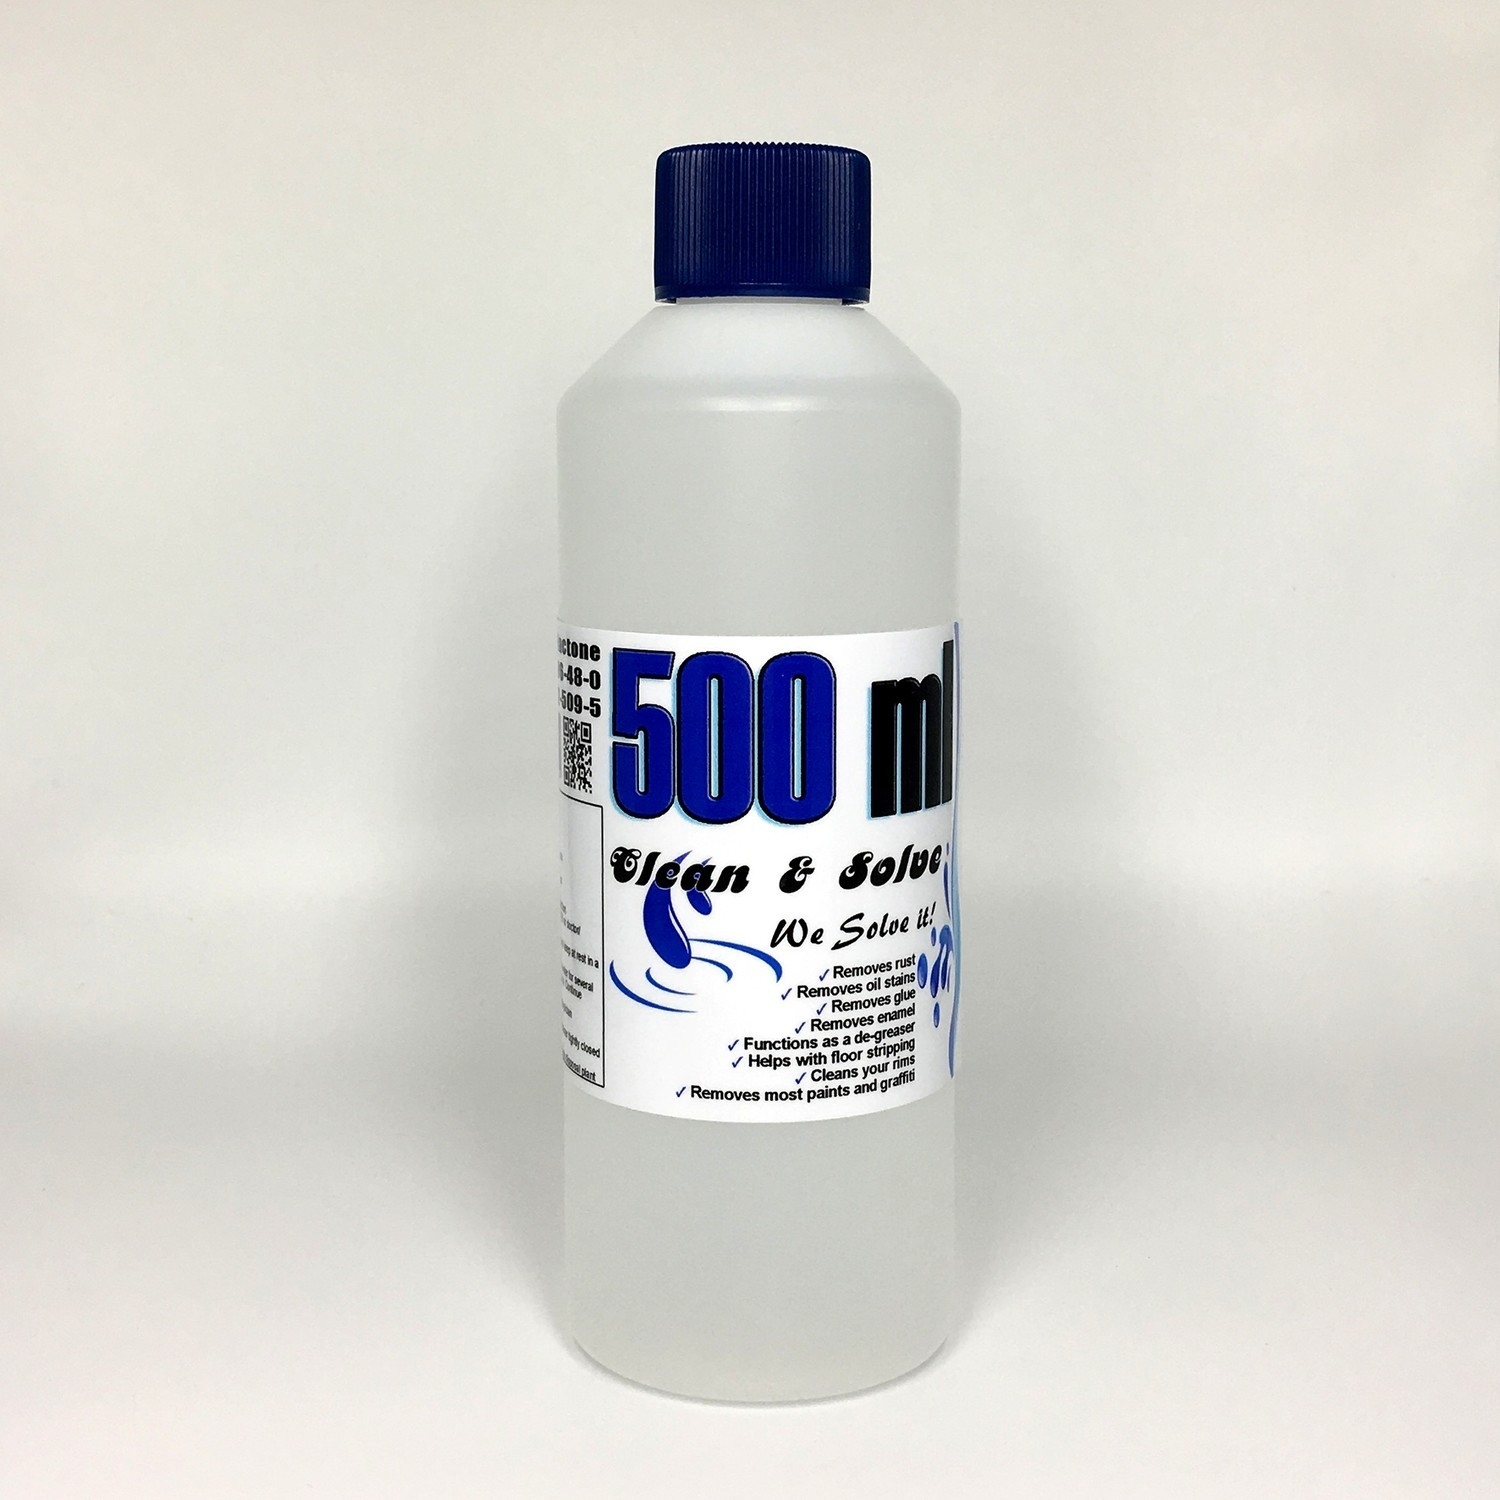 Multi Remover 500 ml Technical Grade 00010 HS Code 29322020